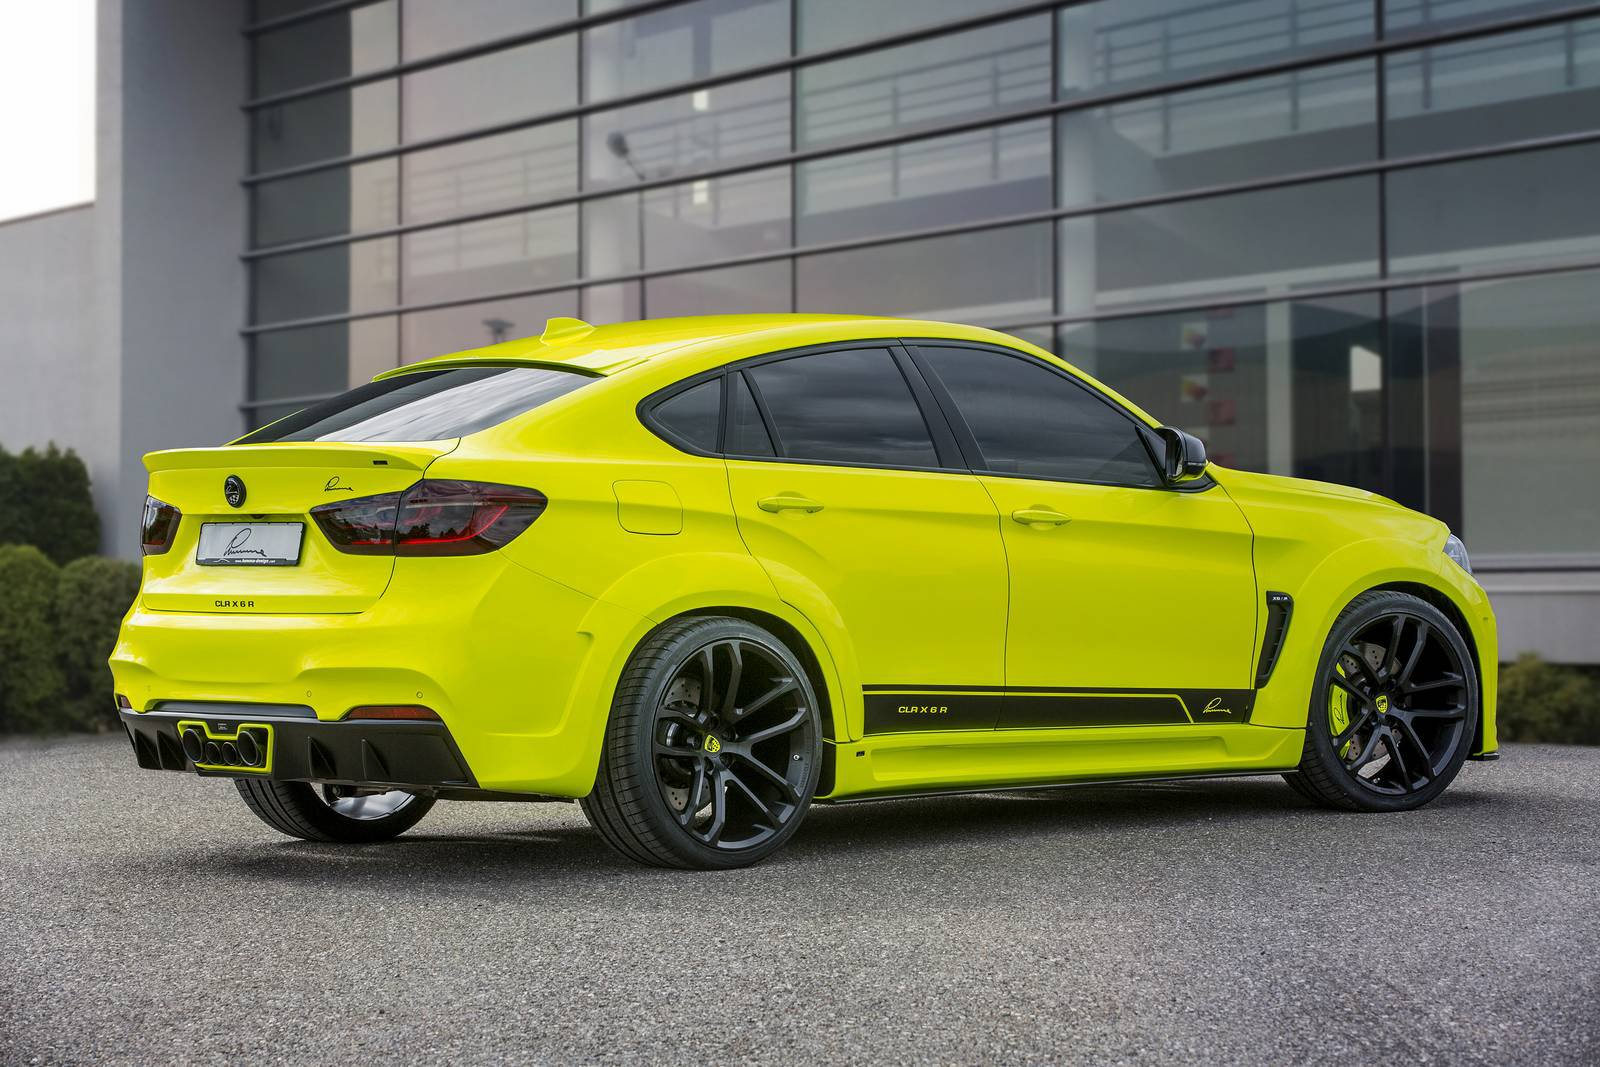 750hp Bmw X6 M By Lumma Design